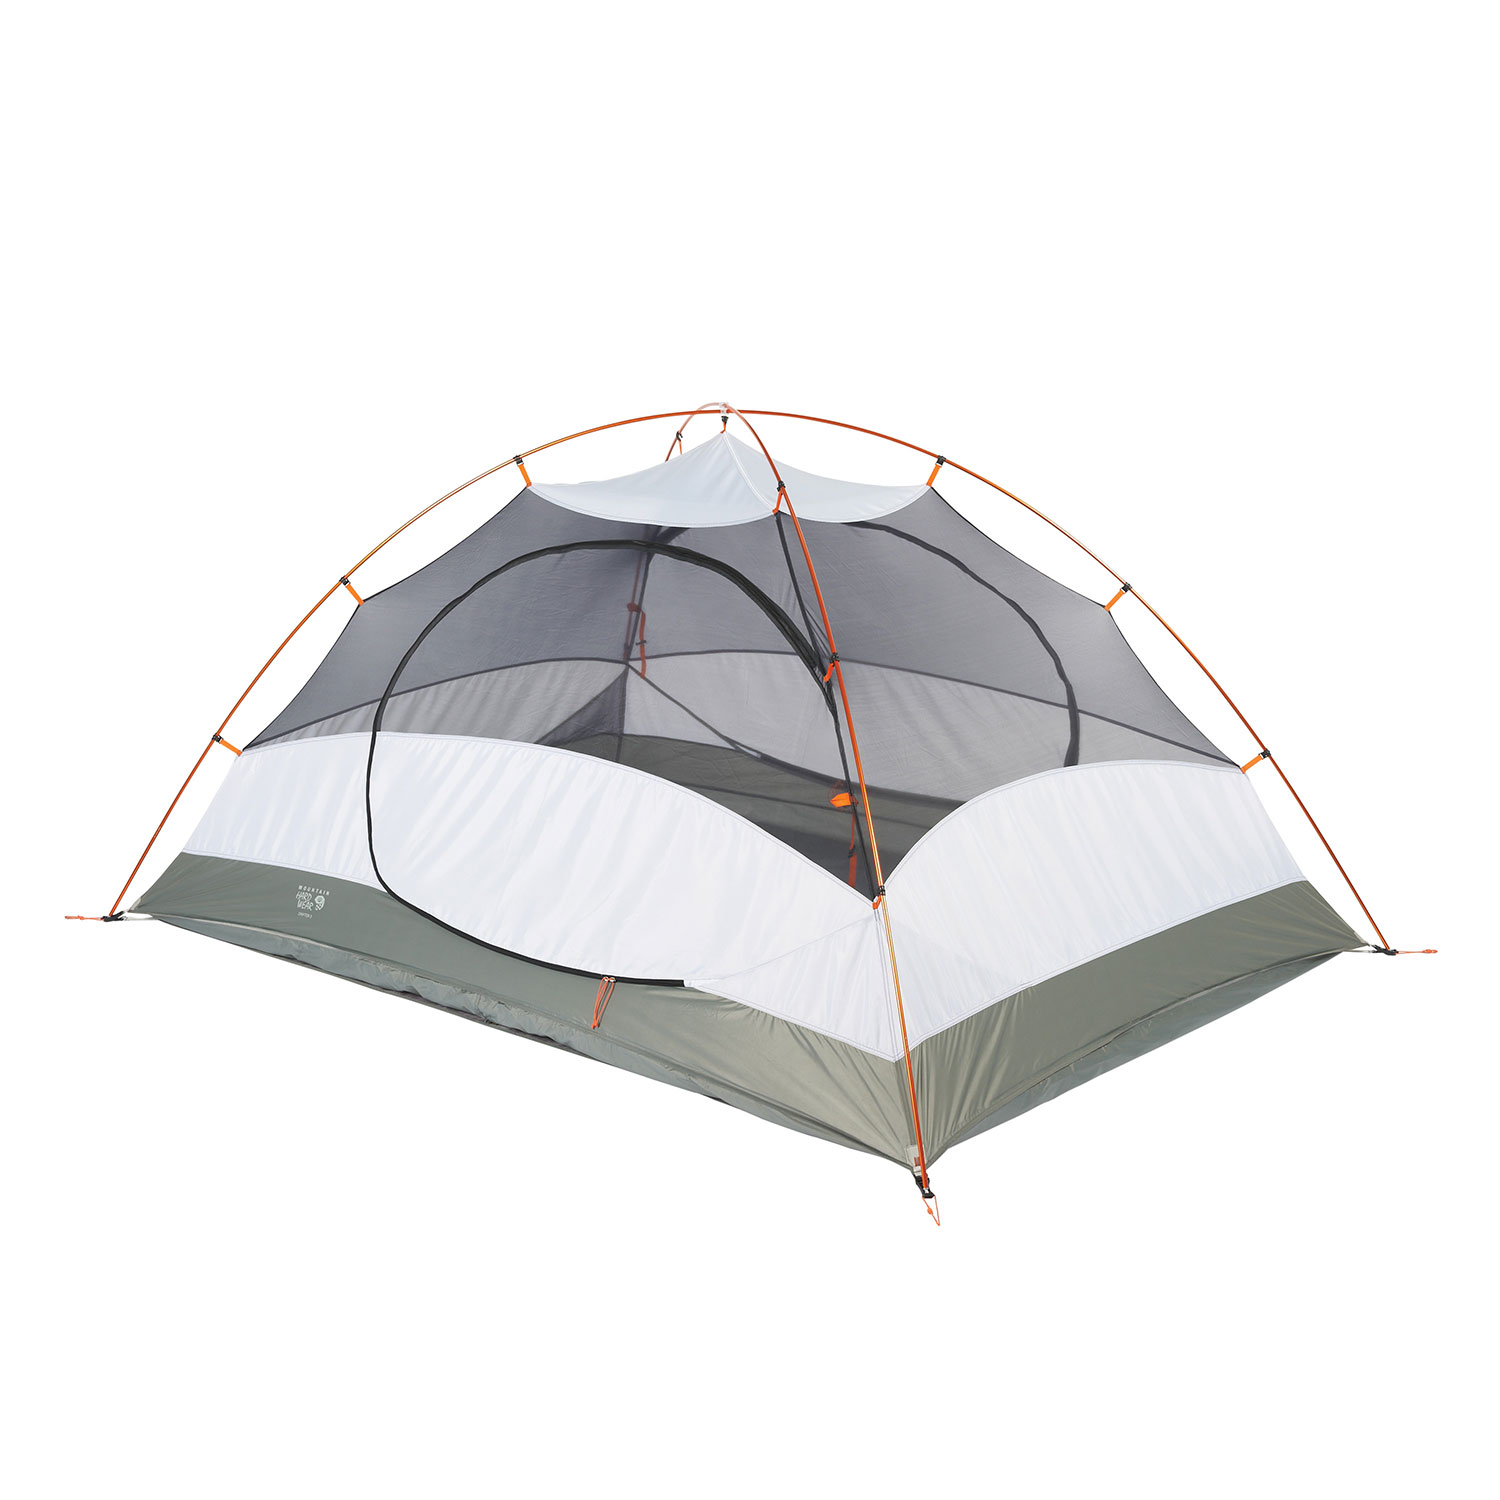 "Camp and Hike A compact, easy-pitching shelter with the versatility of our DryPitch set-up. A spacious backpacking tent for four. DryPitch technology lets users pitch the tent three ways: fly only, canopy only or a complete tent. DryPitch fly-first pitching lets you set up the tent in the rain and stay dry Industry leading DAC Pressfit poles Footprint included  DryPitchsystem allows user to set up a super-light shelter using the tent fly, poles and footprint  Guaranteed watertight construction with fully taped fly, taped perimeter seam, welded corners and welded guy clip anchors. Rain room tested with 1200"" of rain in 24 hours  Gear loft (included  provides convenient storage  Two mesh/ canopy doors with dual-slider zipper for easy entry and exit  Reflective guy-out loops, starter point and zipper pulls for easy set-up at night  Mesh storage pockets  Quick, easy and now with DryPitch, the compact Drifter is perfect for camping and backpacking  Capacity: 4  Minimum Weight: 6 lb 14 oz/ 3.12kg  Packed Weight: 8 lb 4 oz/ 3.73kg   Tent Floor: 70D Nylon Taffeta 3000mm PU  Poles: Paleria DAC Pressfit  Canopy: 68D Polyester Ripstop DWR  Fly: 75D Polyester Taffeta 1500mm PU  Floor Area: 56 sq ft/ 5.2m2  Number Of Doors: 2  Number Of Poles: 1  Number Of Vestibules: 2  Vestibule Area: 10 sq ft 0.9m2/ 10 sq ft 0.9m2  Interior Height: 50""/ 127cm  Packed Diameter: 7 in/ 19cm  Packed Length: 25 in/ 64cm  Pitch Light Weight: 4 lb 13 oz/ 2.19kg - $271.95"